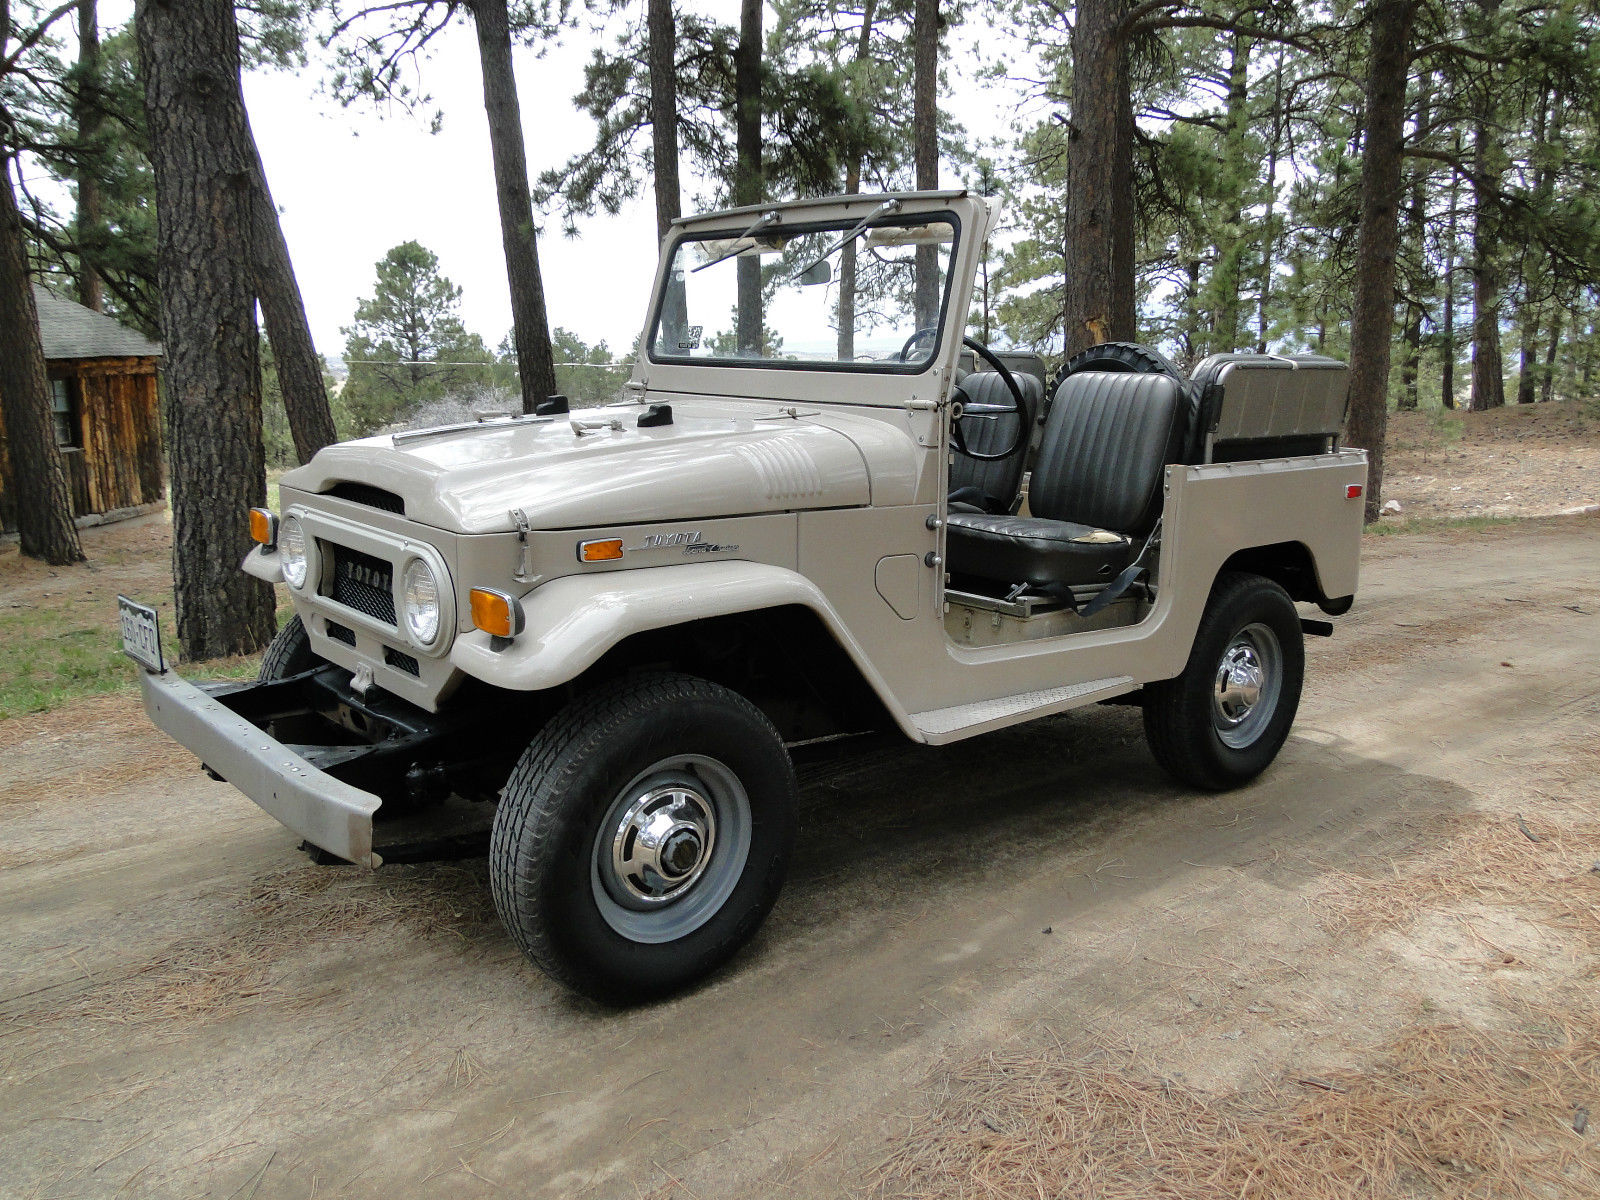 Cruisers For Sale Restored Toyota Land Bj40 Wiring Diagram Photos Of